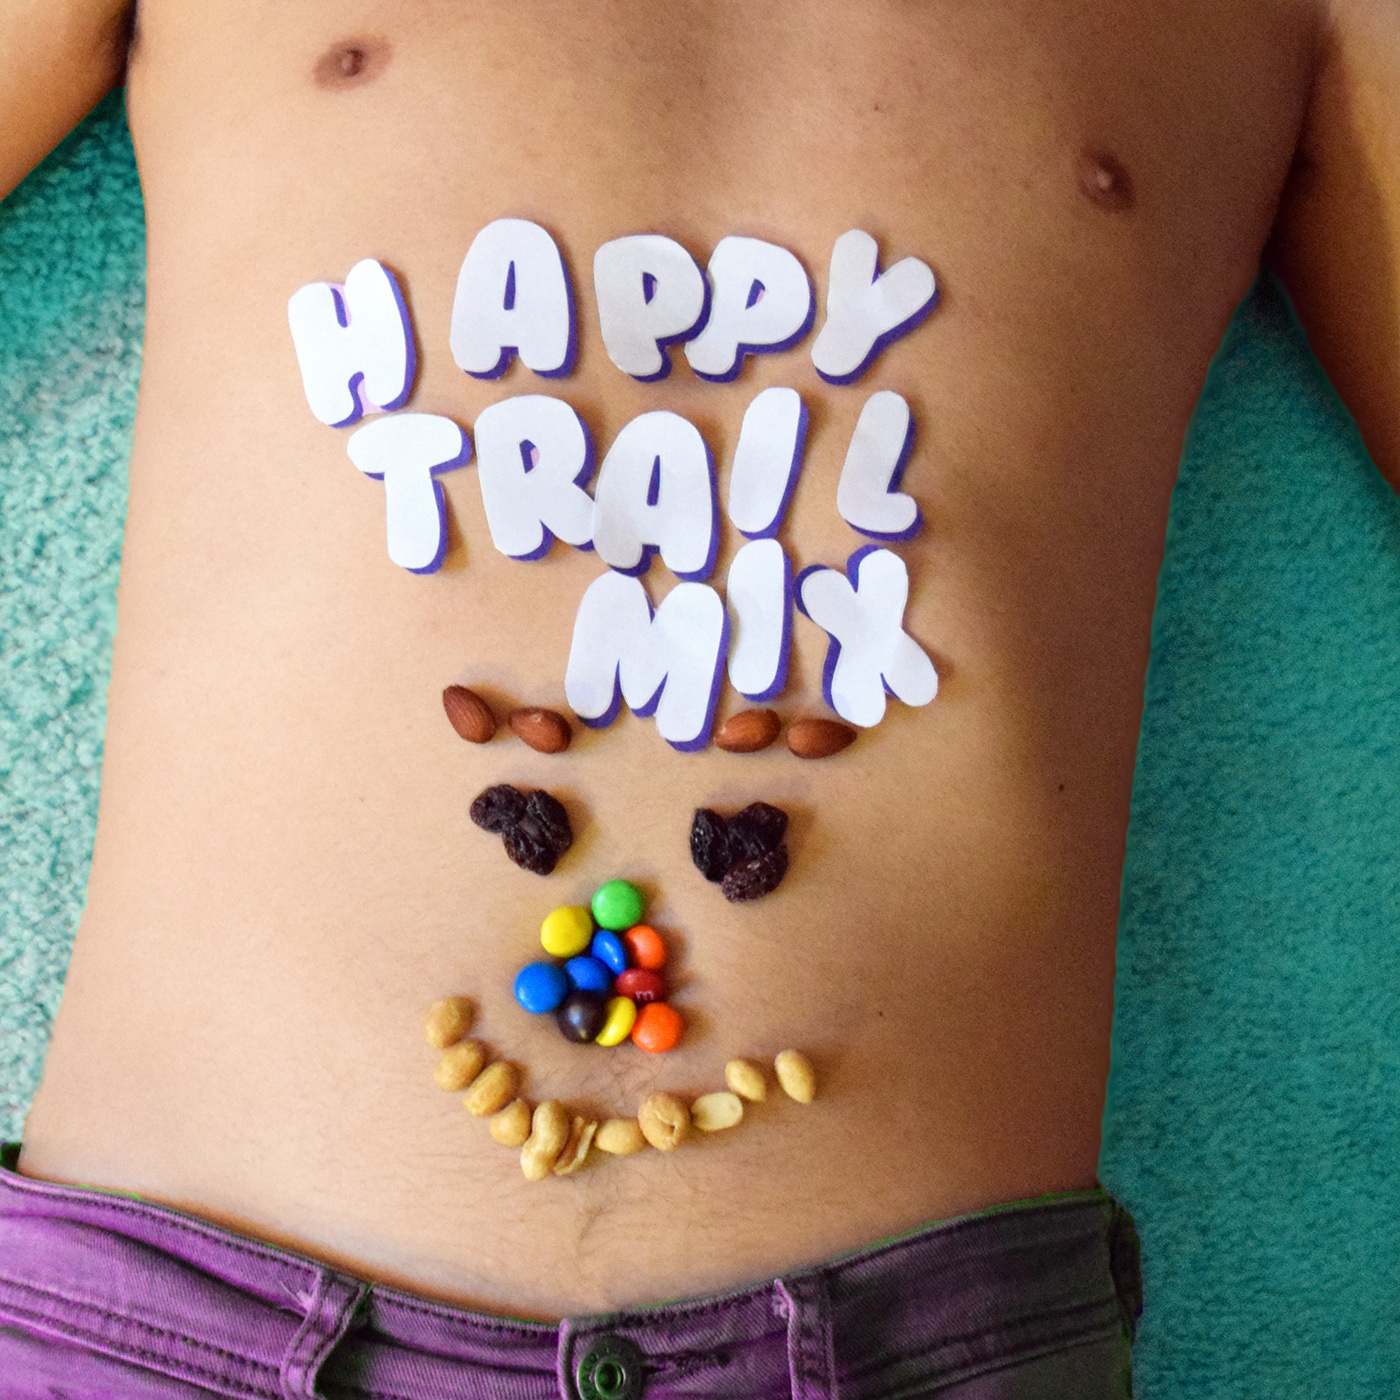 The Finale of Happy Trail Mix